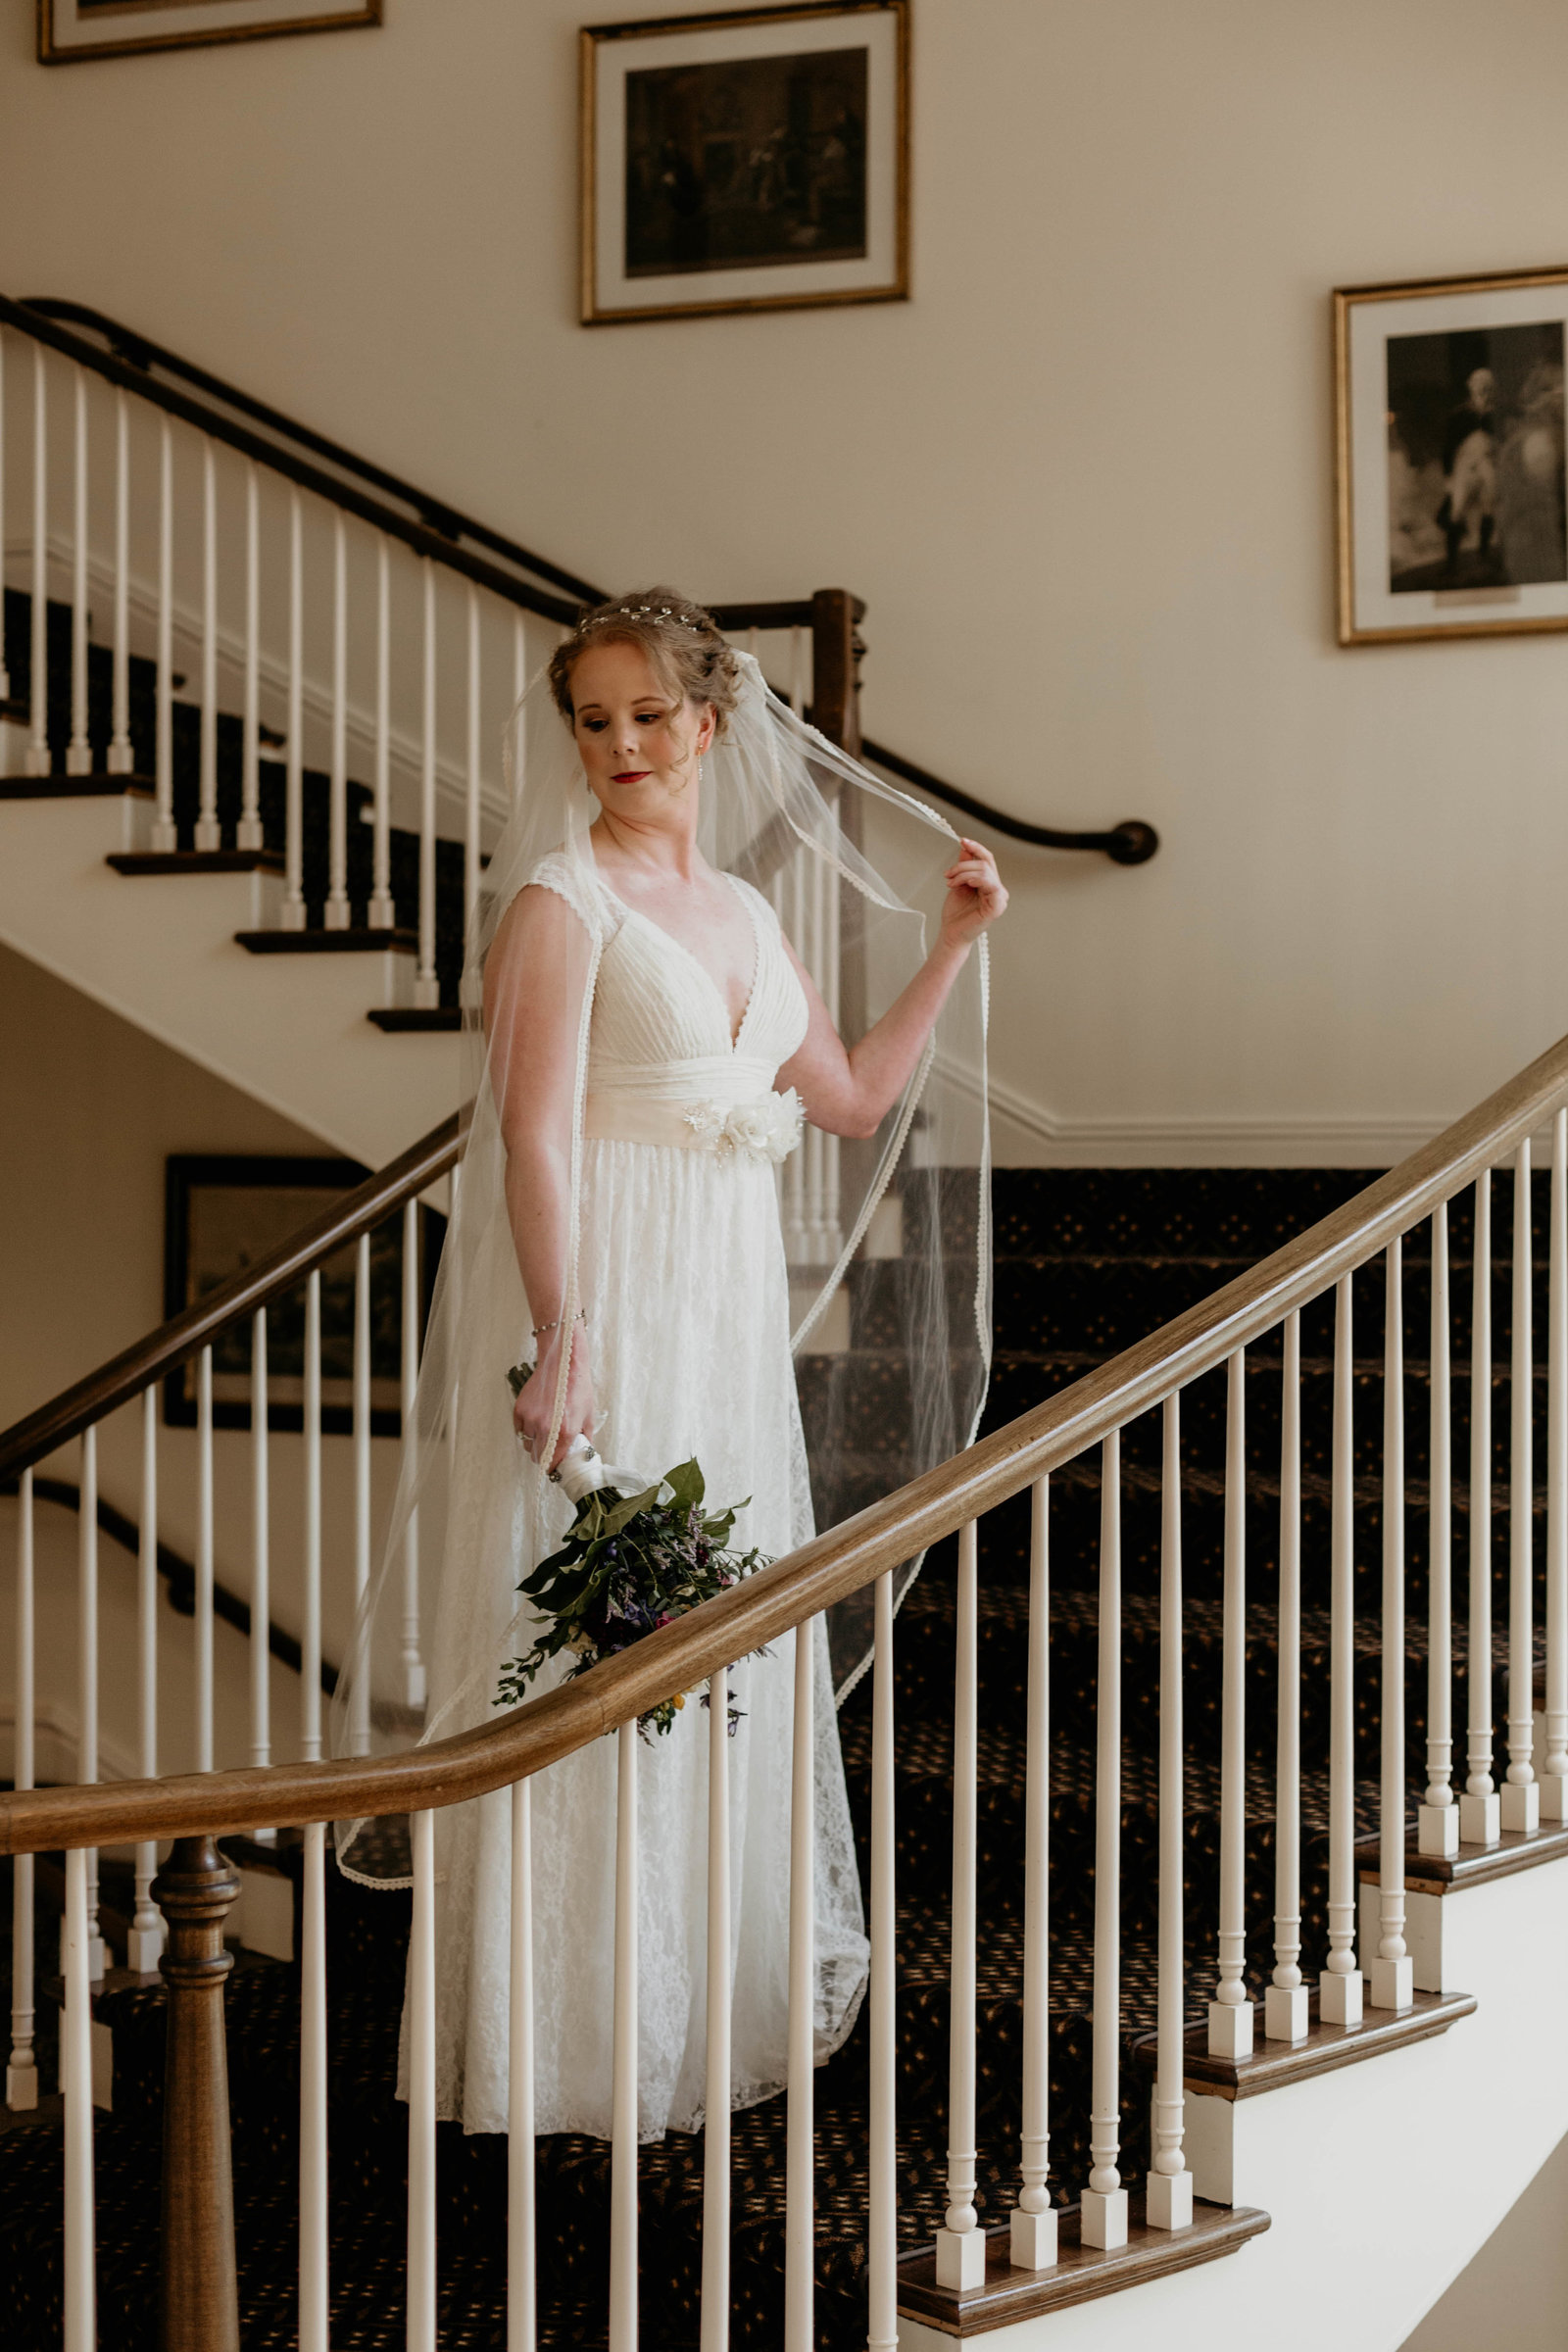 Bridal portrait on the stair case at Avon Old Farms Hotel in Avon, Connecticut.